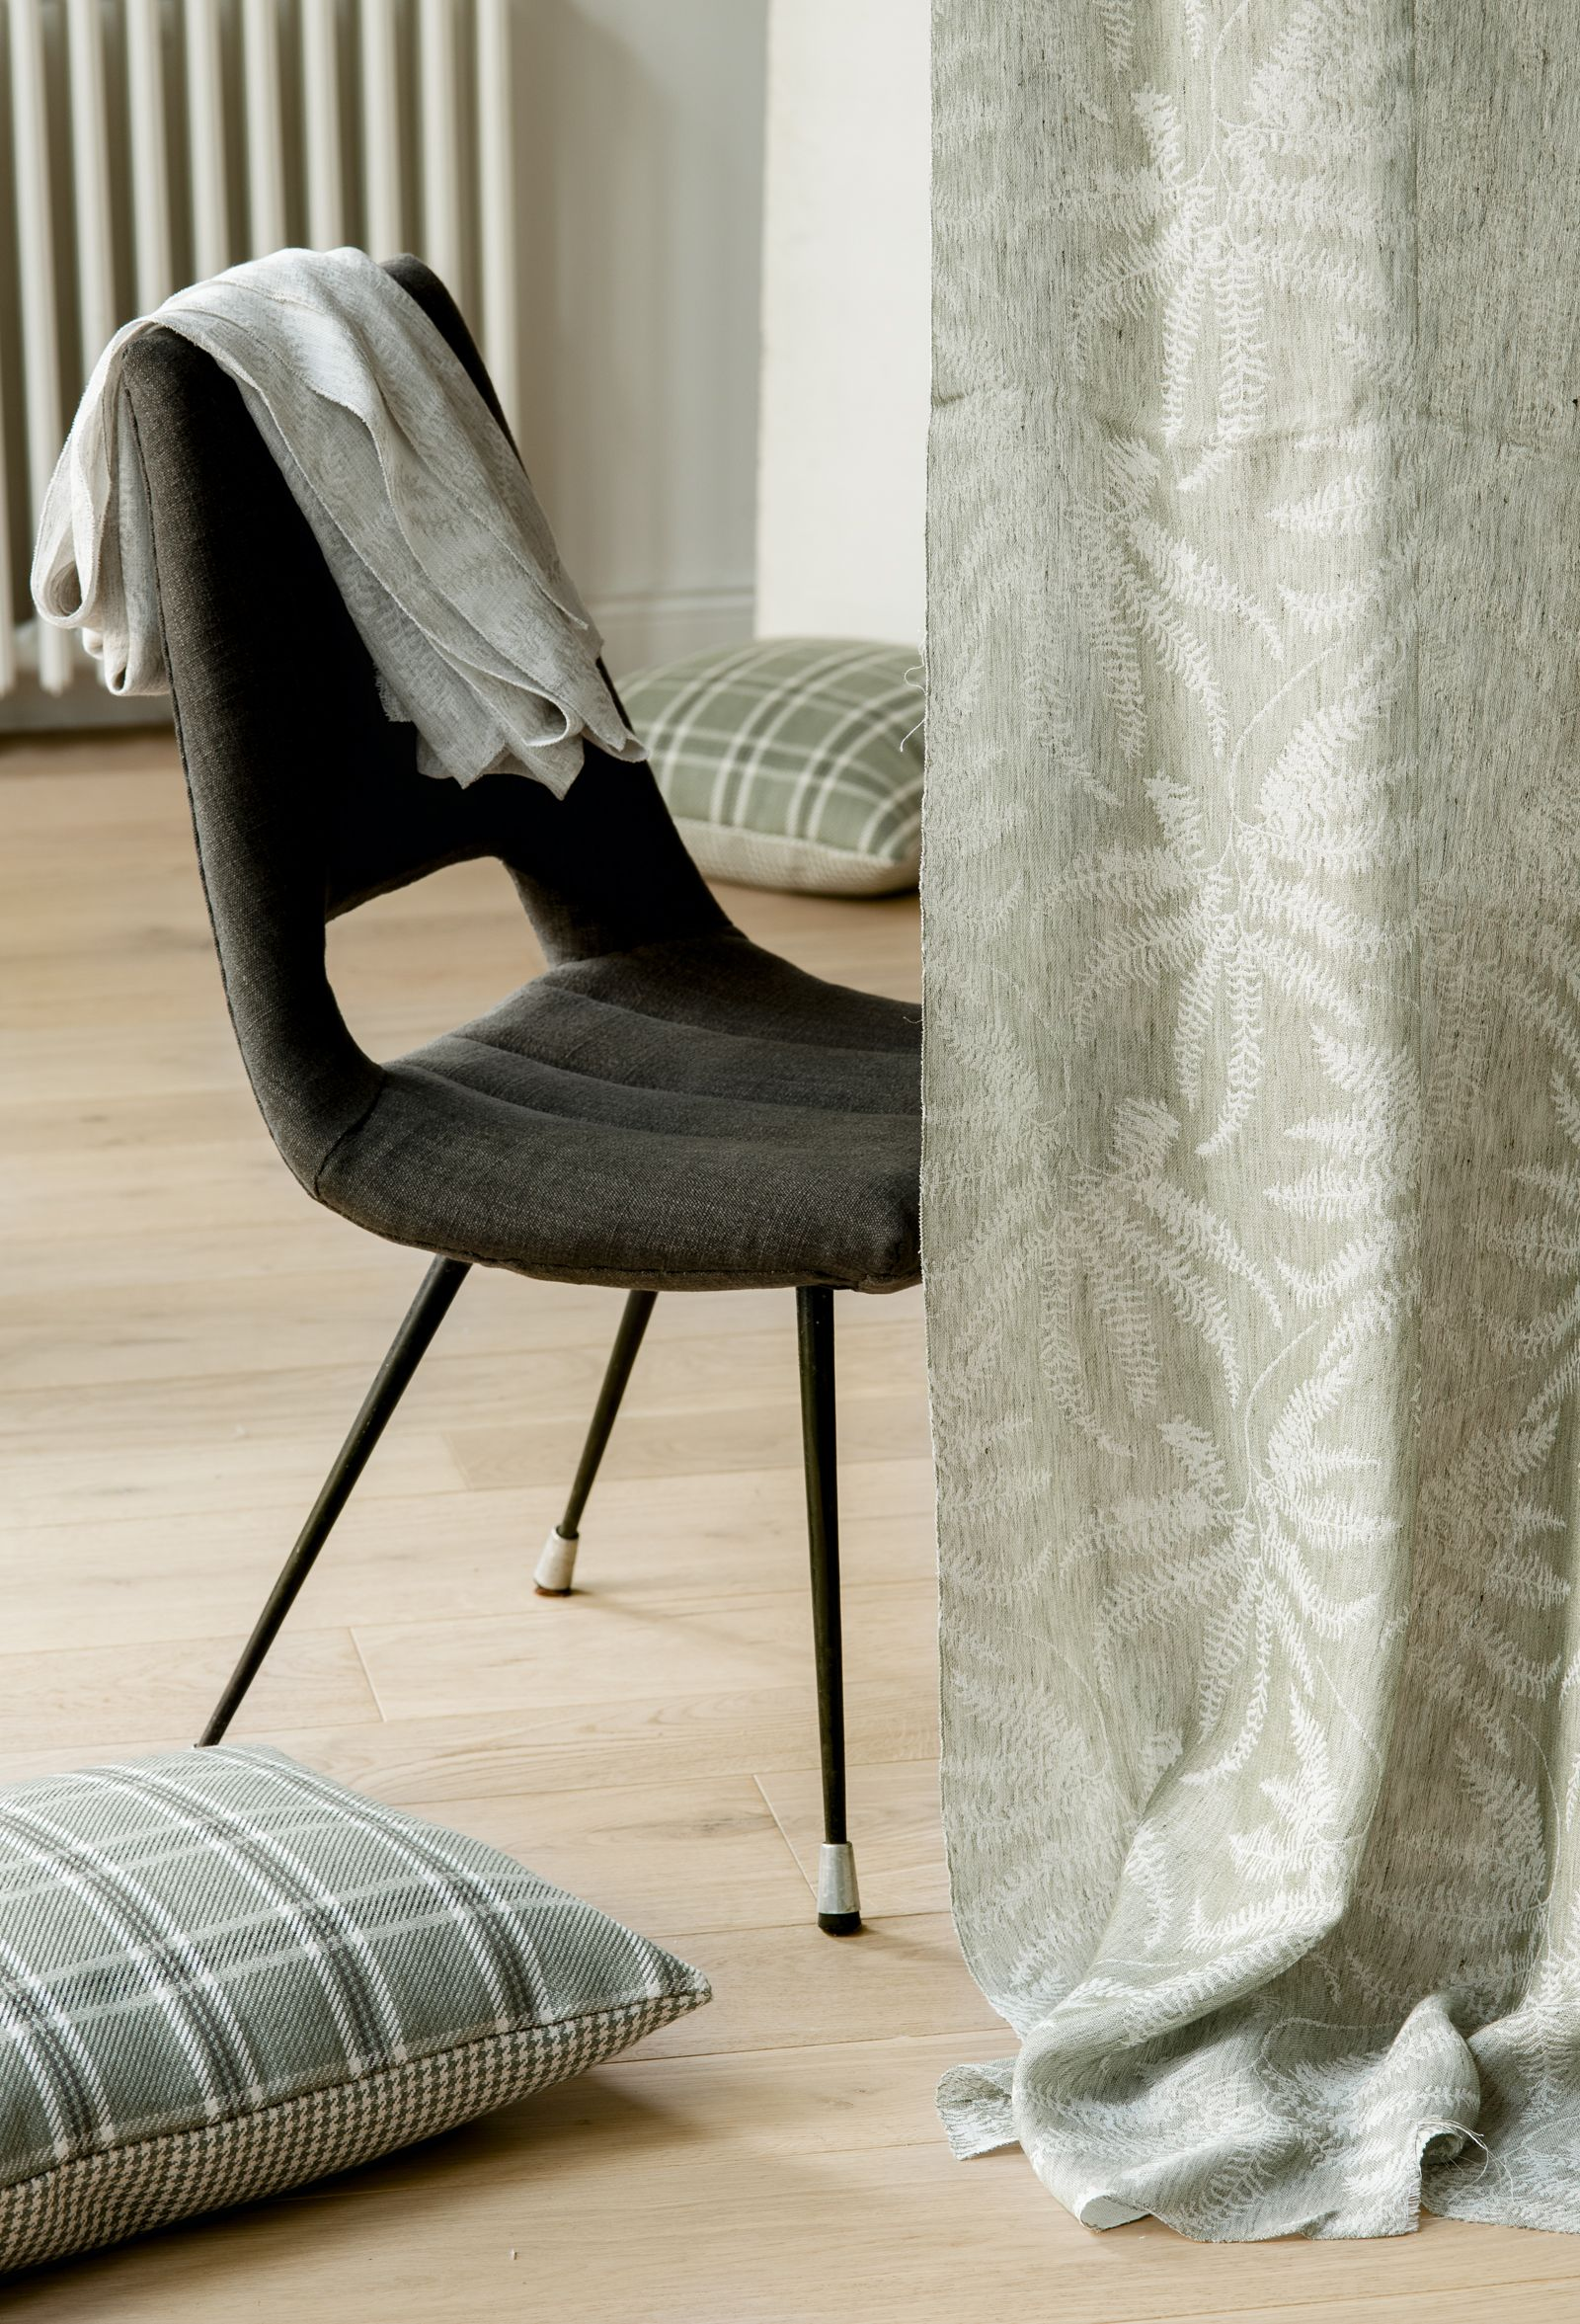 Jacquard Sheer 100 Linen With An Actual Trendy Design Of Ferns Which Stands Out For Its Freshness Textiles Fabric Naturalcolors Lescreations Grupol Living